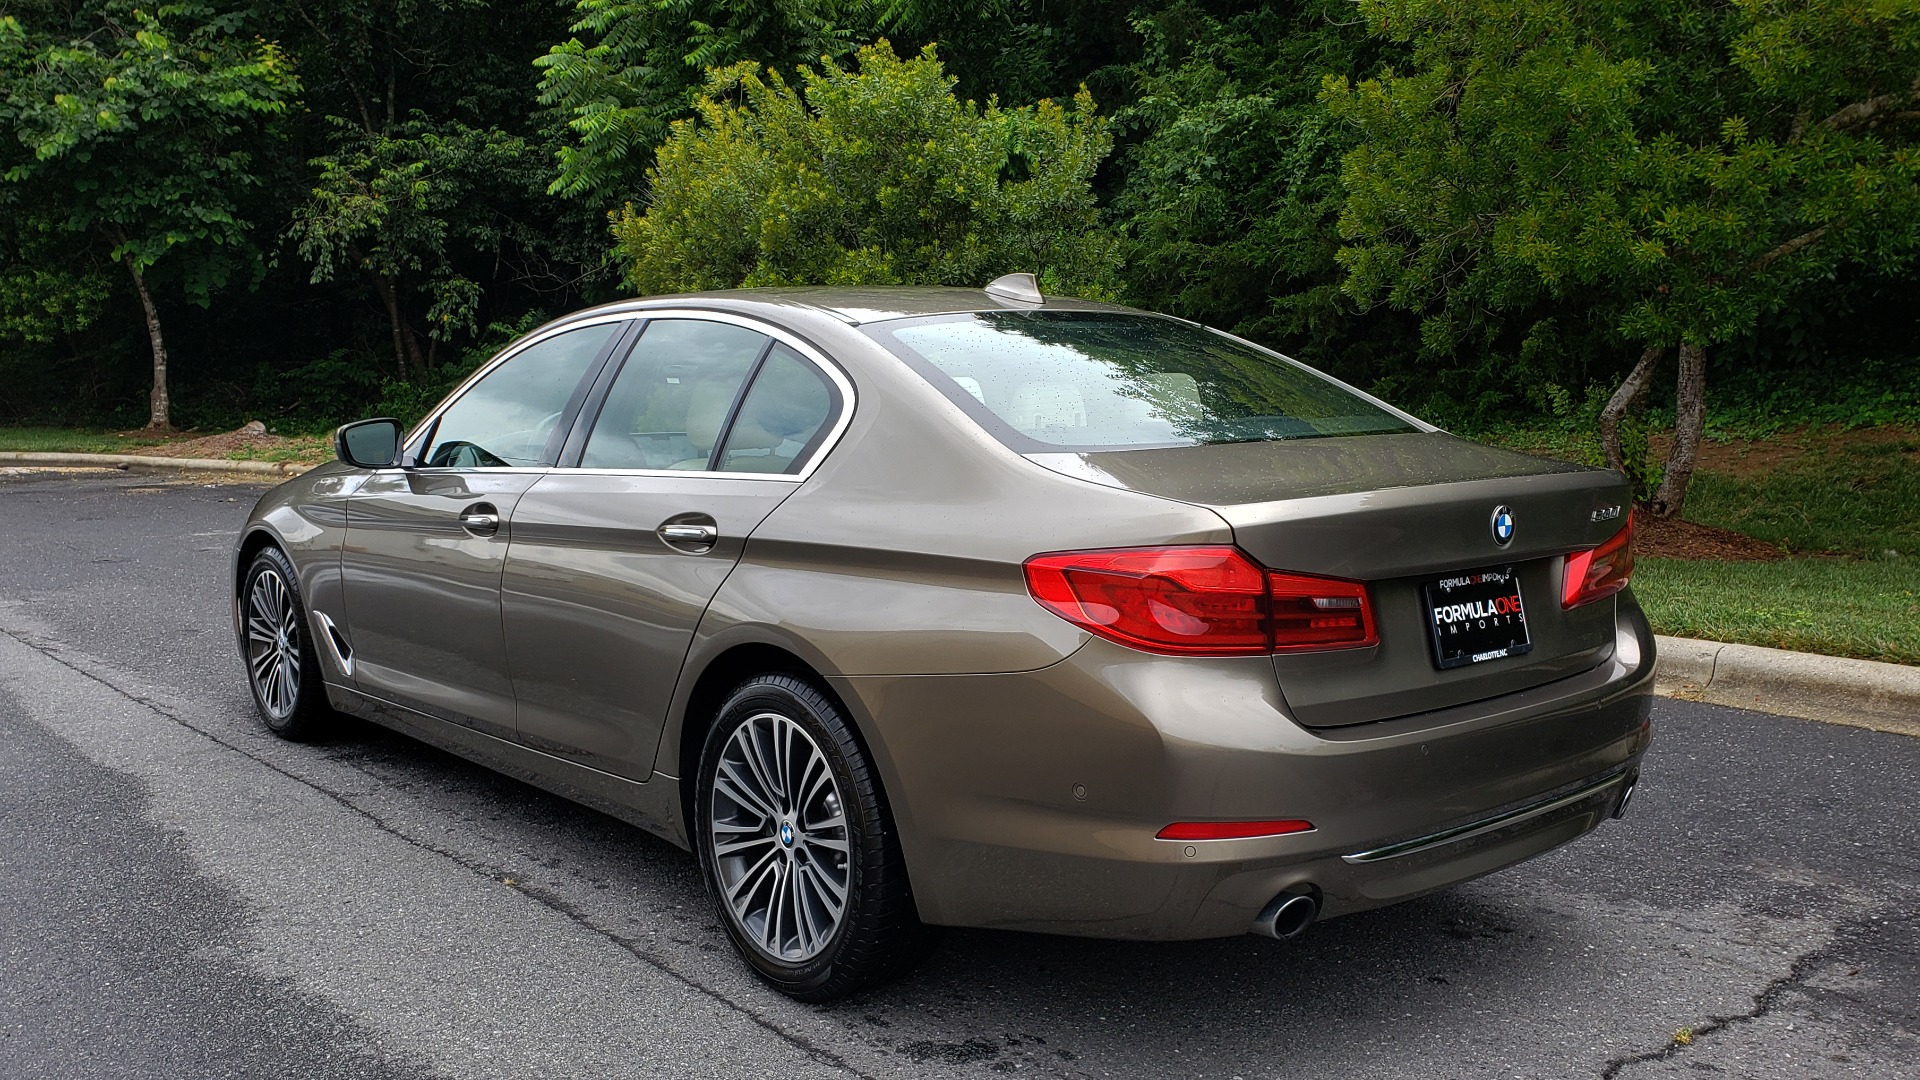 Used 2017 BMW 5 SERIES 530I PREMIUM / NAV / SUNROOF / DRVR ASST PLUS II / LUXURY for sale Sold at Formula Imports in Charlotte NC 28227 3